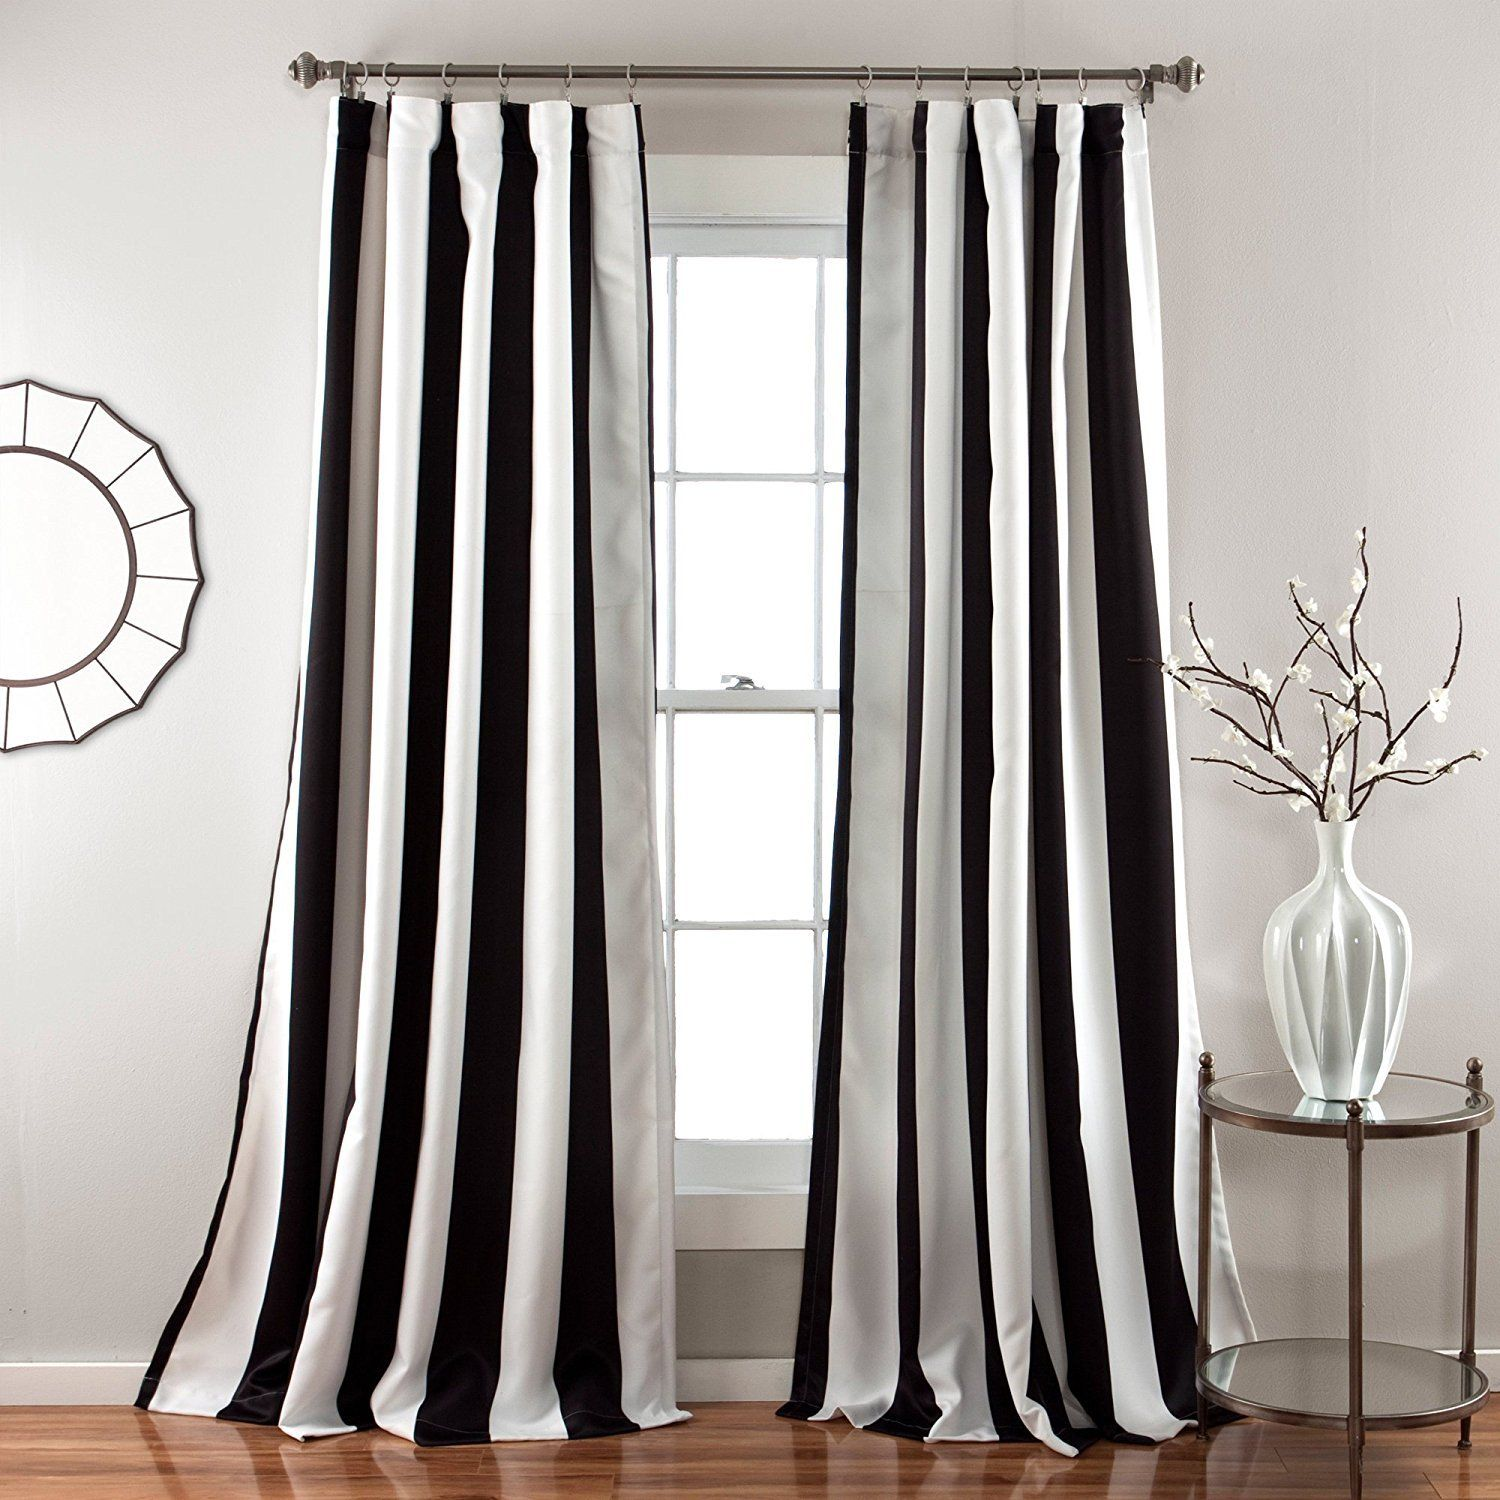 Black Stripe Curtains 84 Inch Bold Black White Rugby Stripes Curtains Pair Panel Set